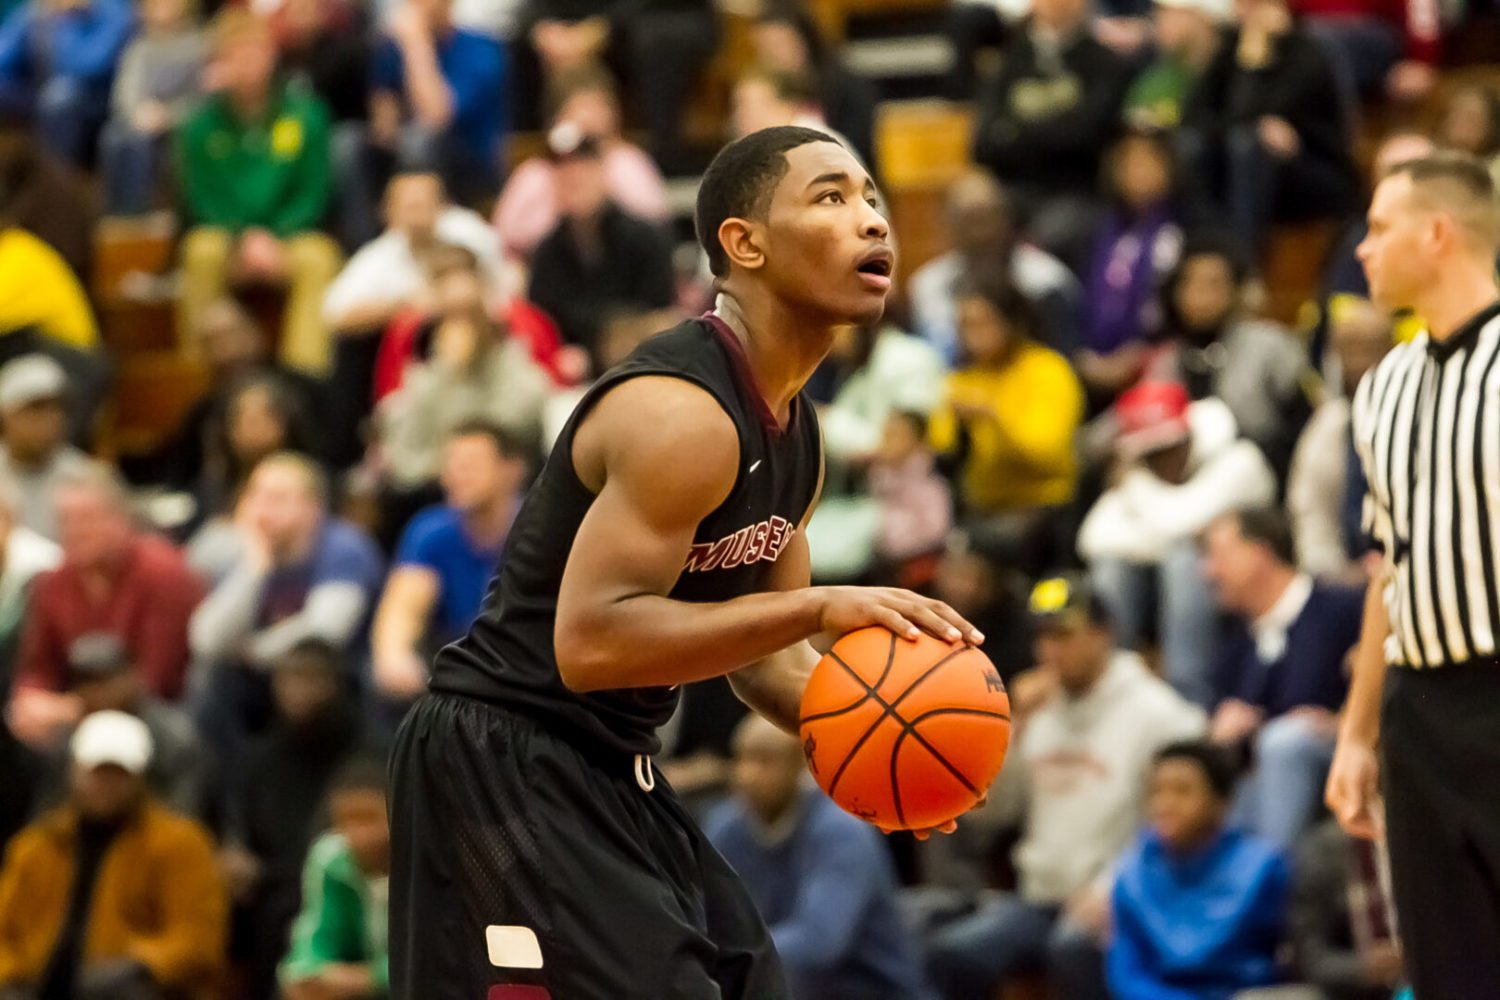 Muskegon Basketball Showcase: Muskegon vs. Chicago Curie (Photo gallery)